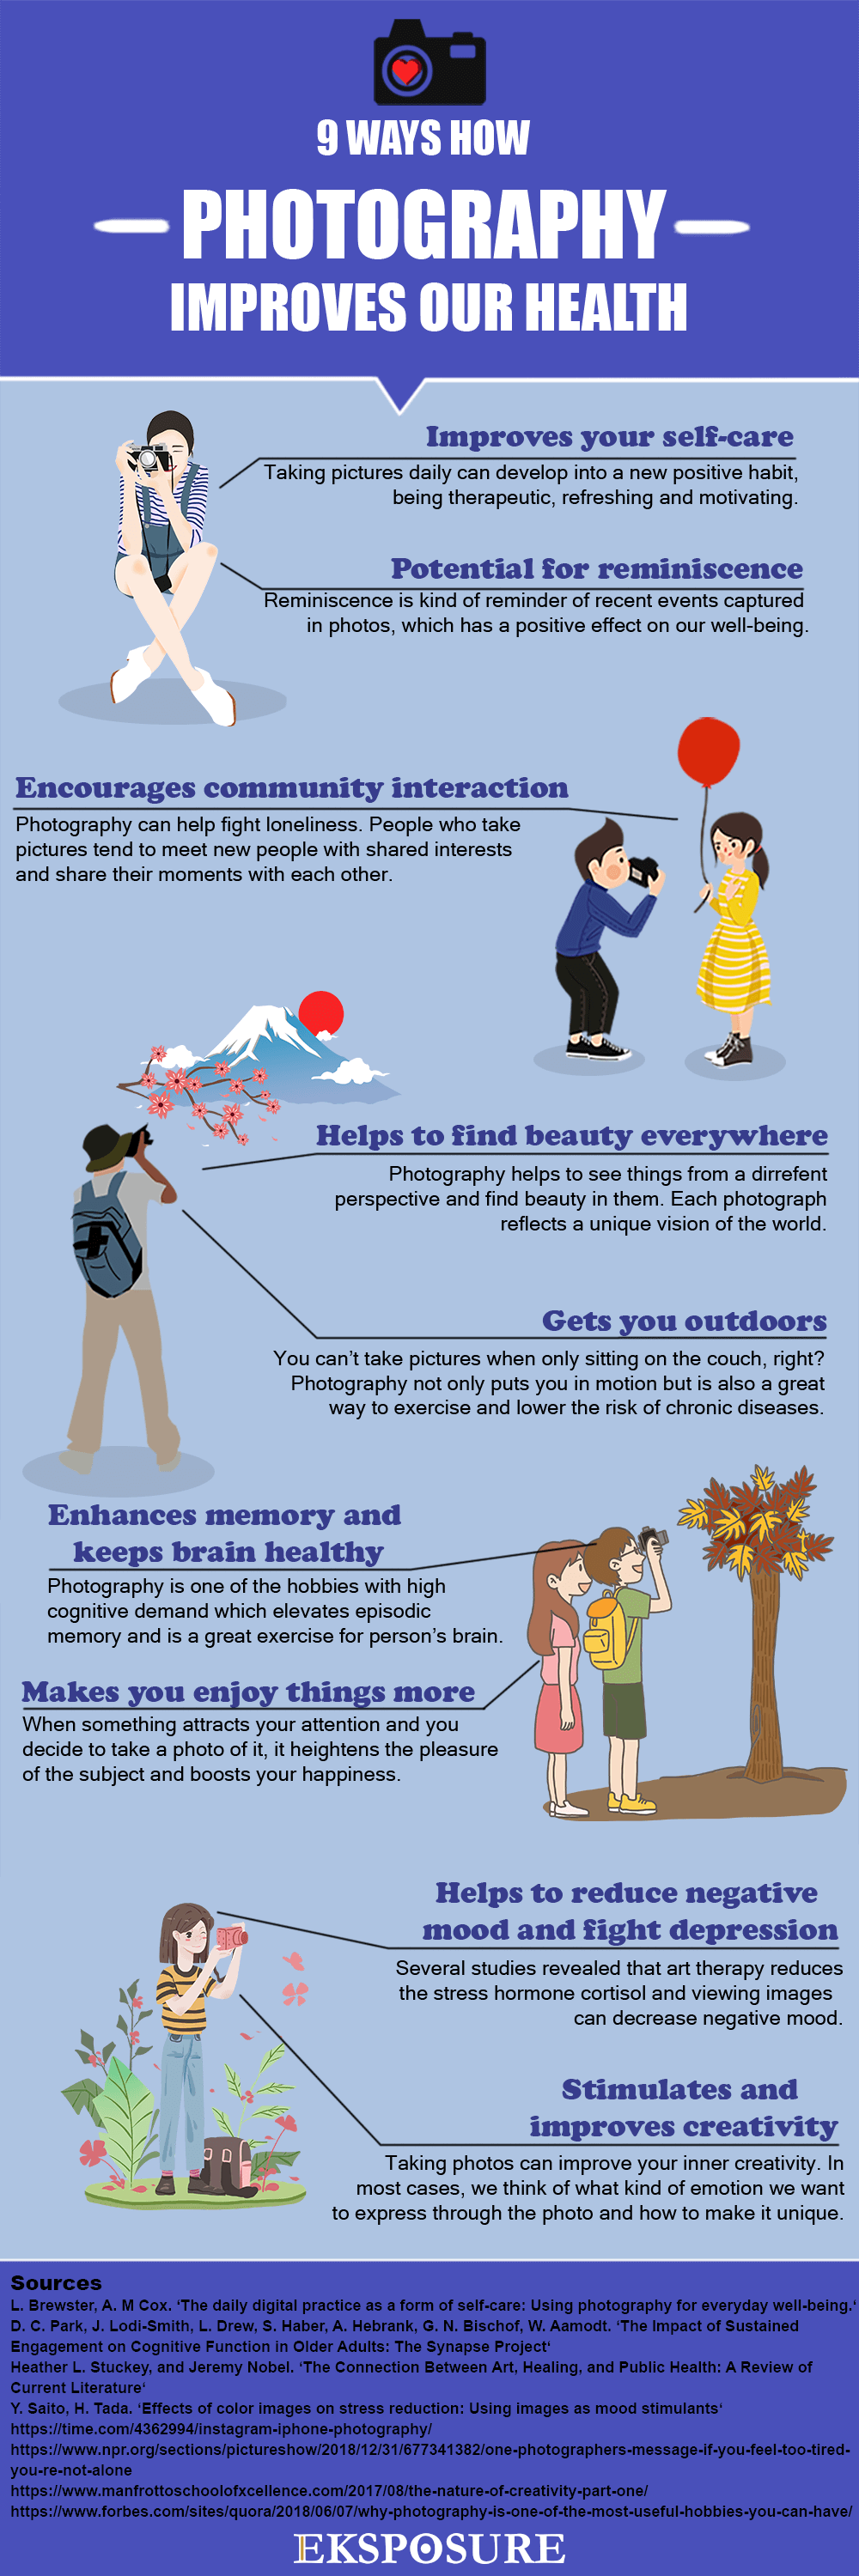 health benefits of photography infographic